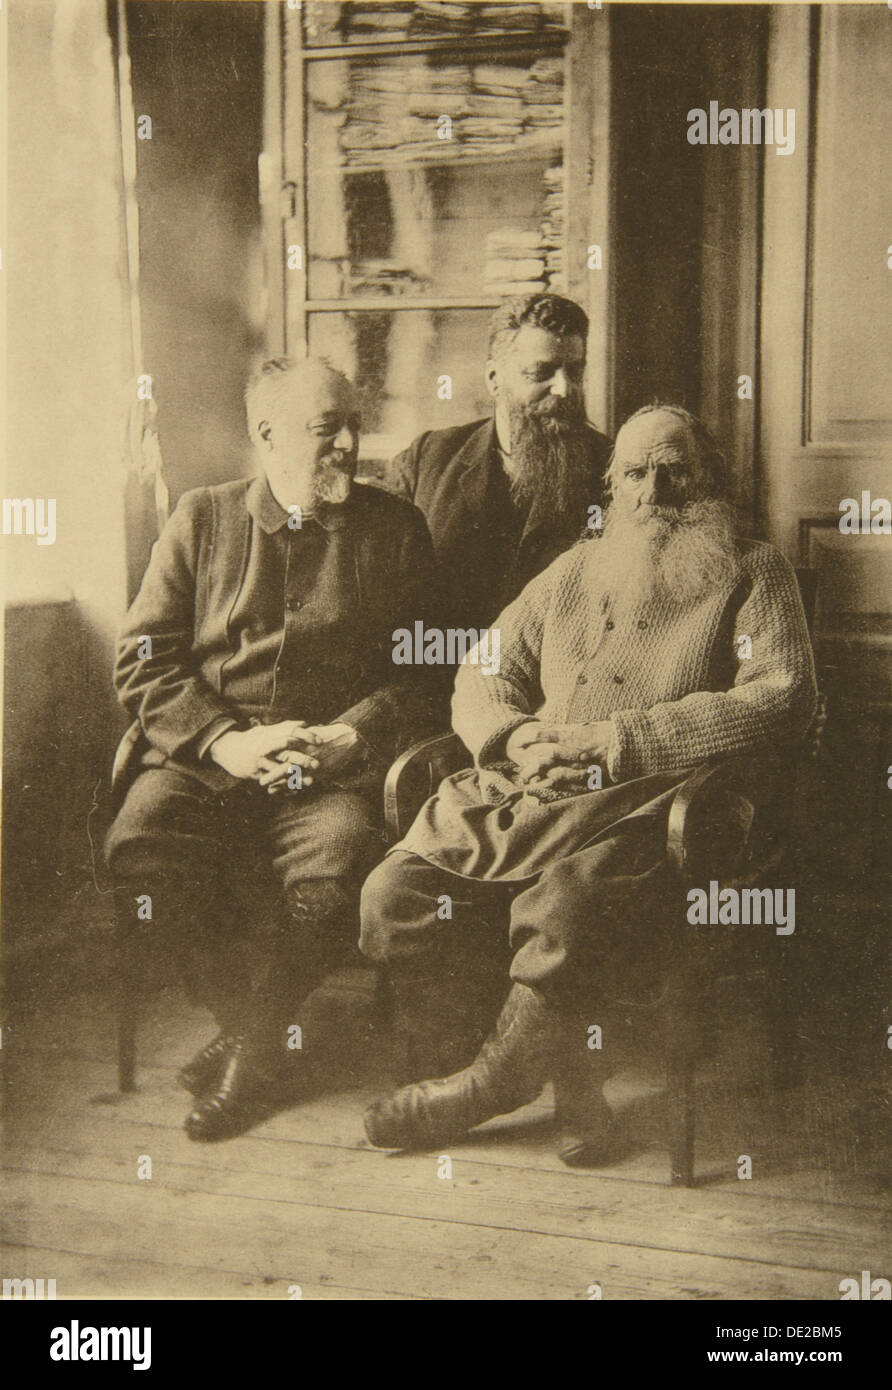 Russian author leo tolstoy with politician mikhail stakhovich and mikhail sukhotin russia 1900s